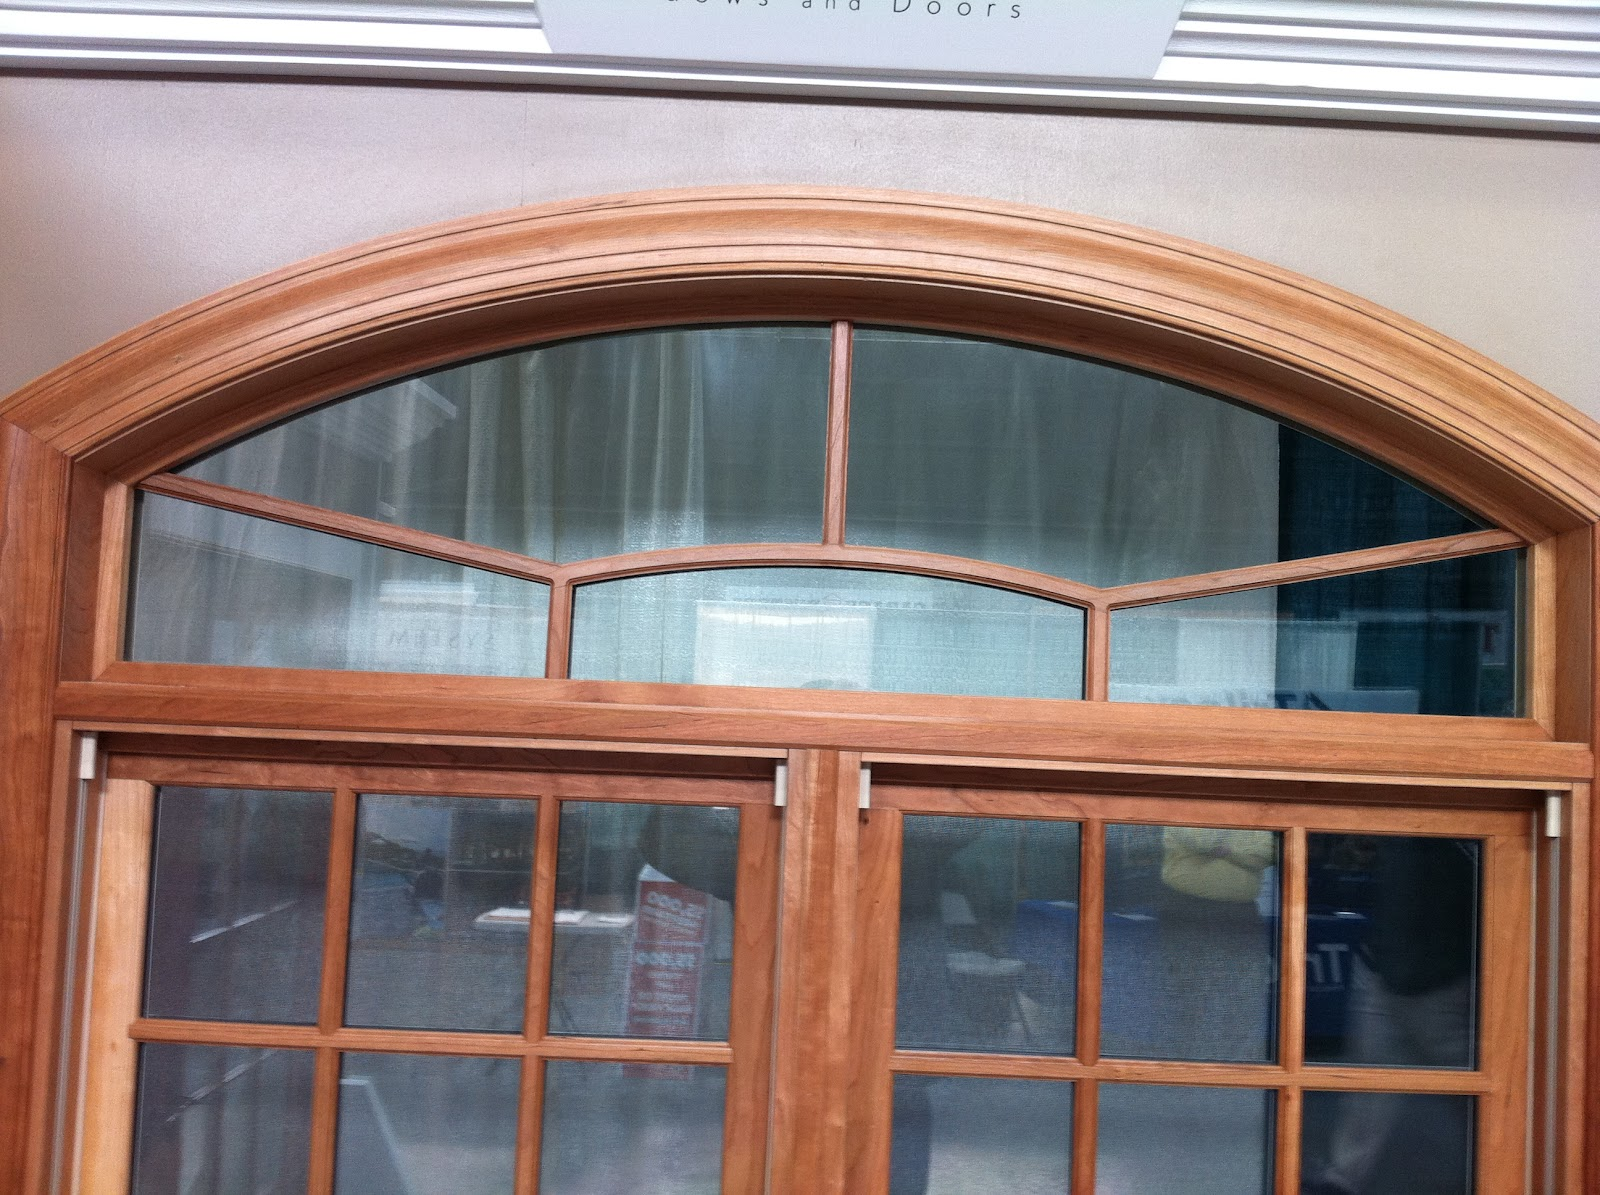 Otg At The Sonoma Home Show With Marvin Windows Ot Glass